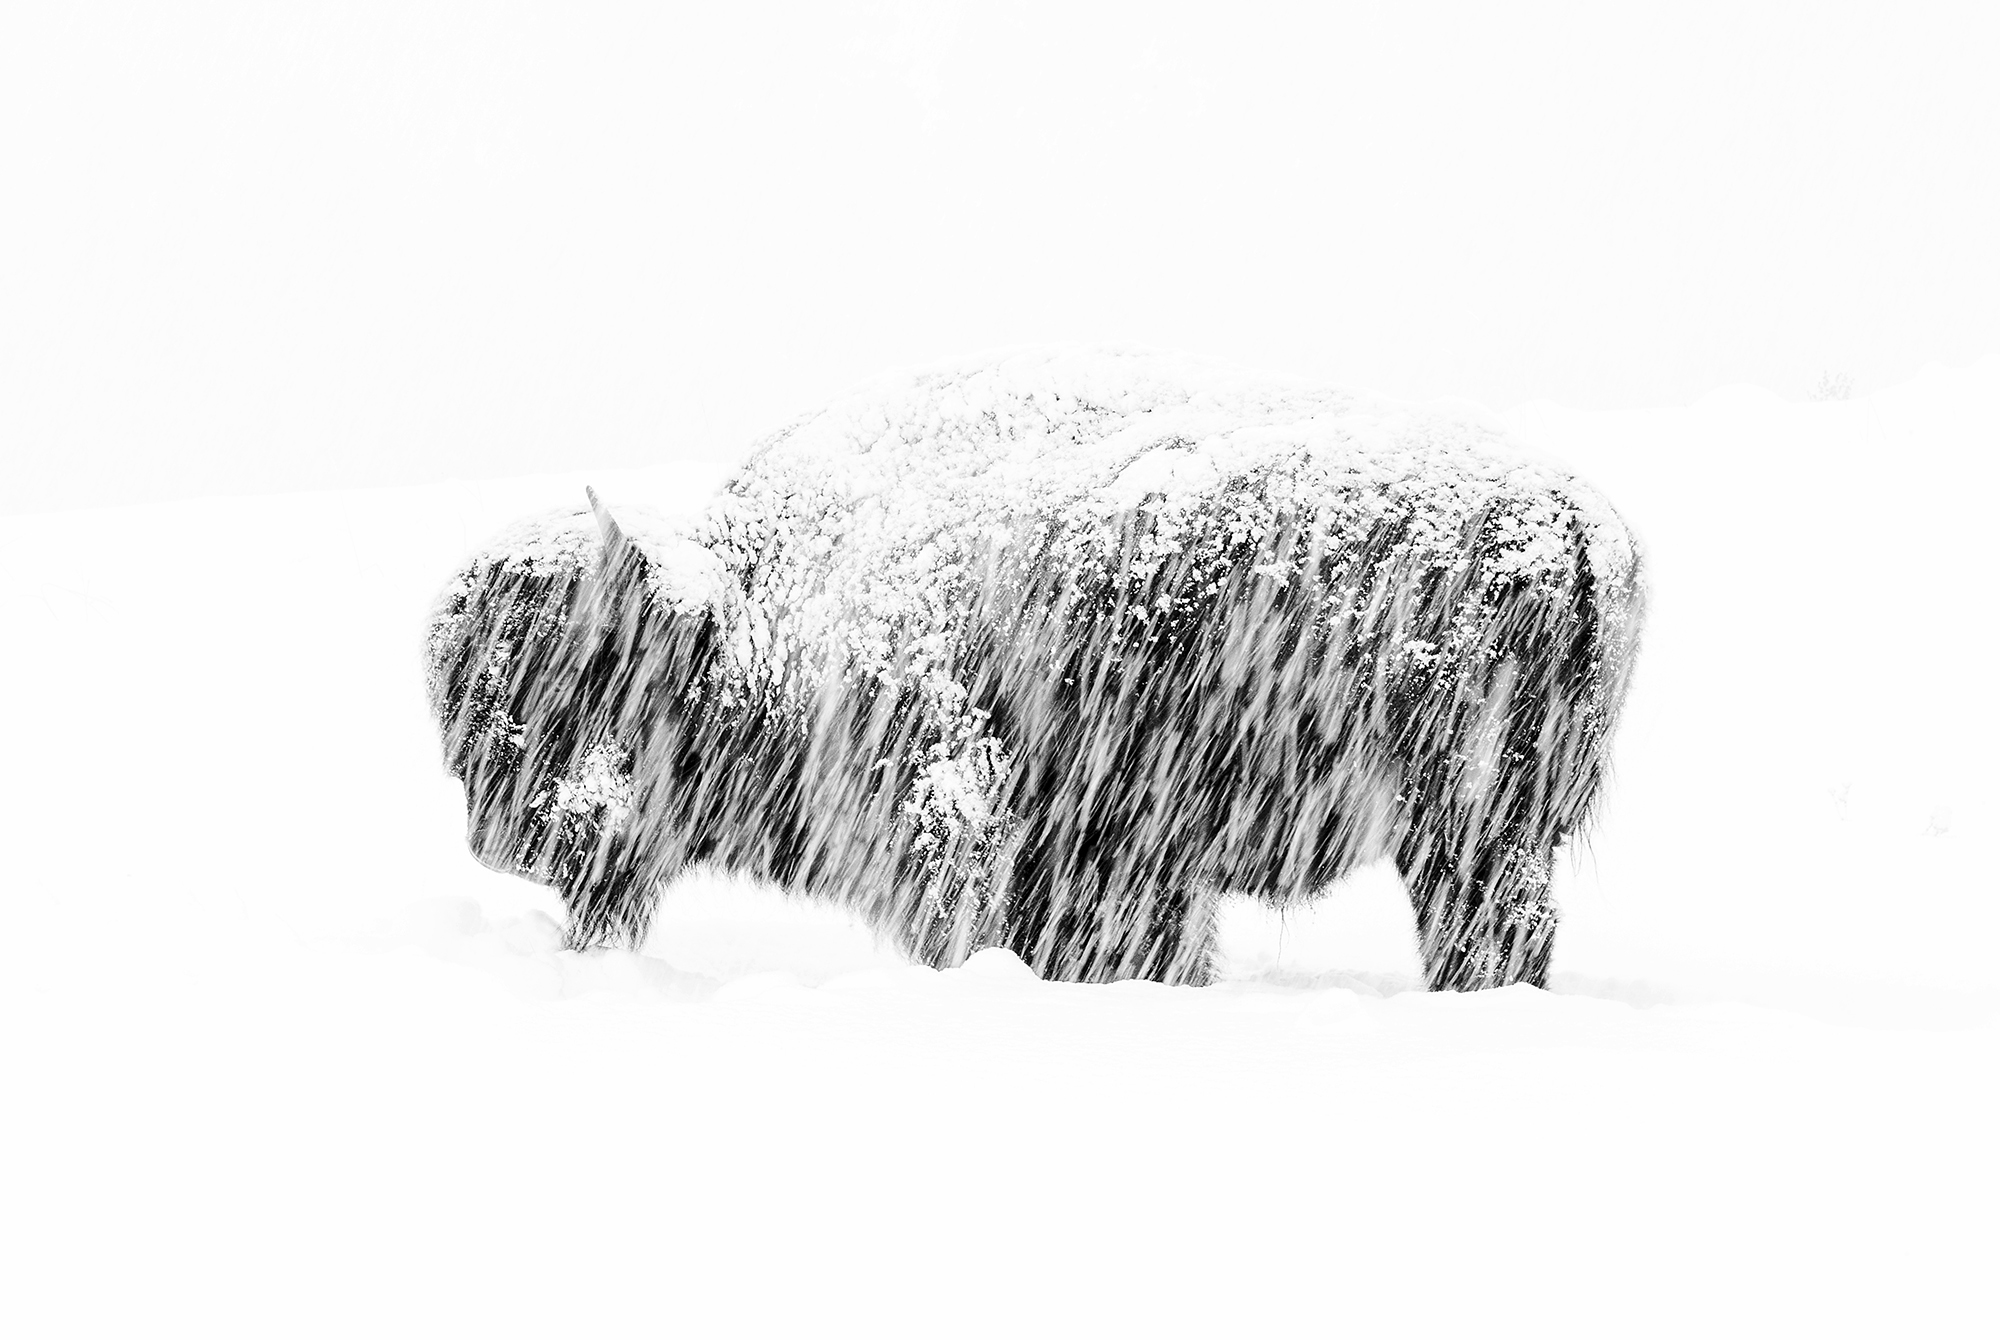 In a winter whiteout in Yellowstone National Park, a lone American bison stands weathering the silent snow storm